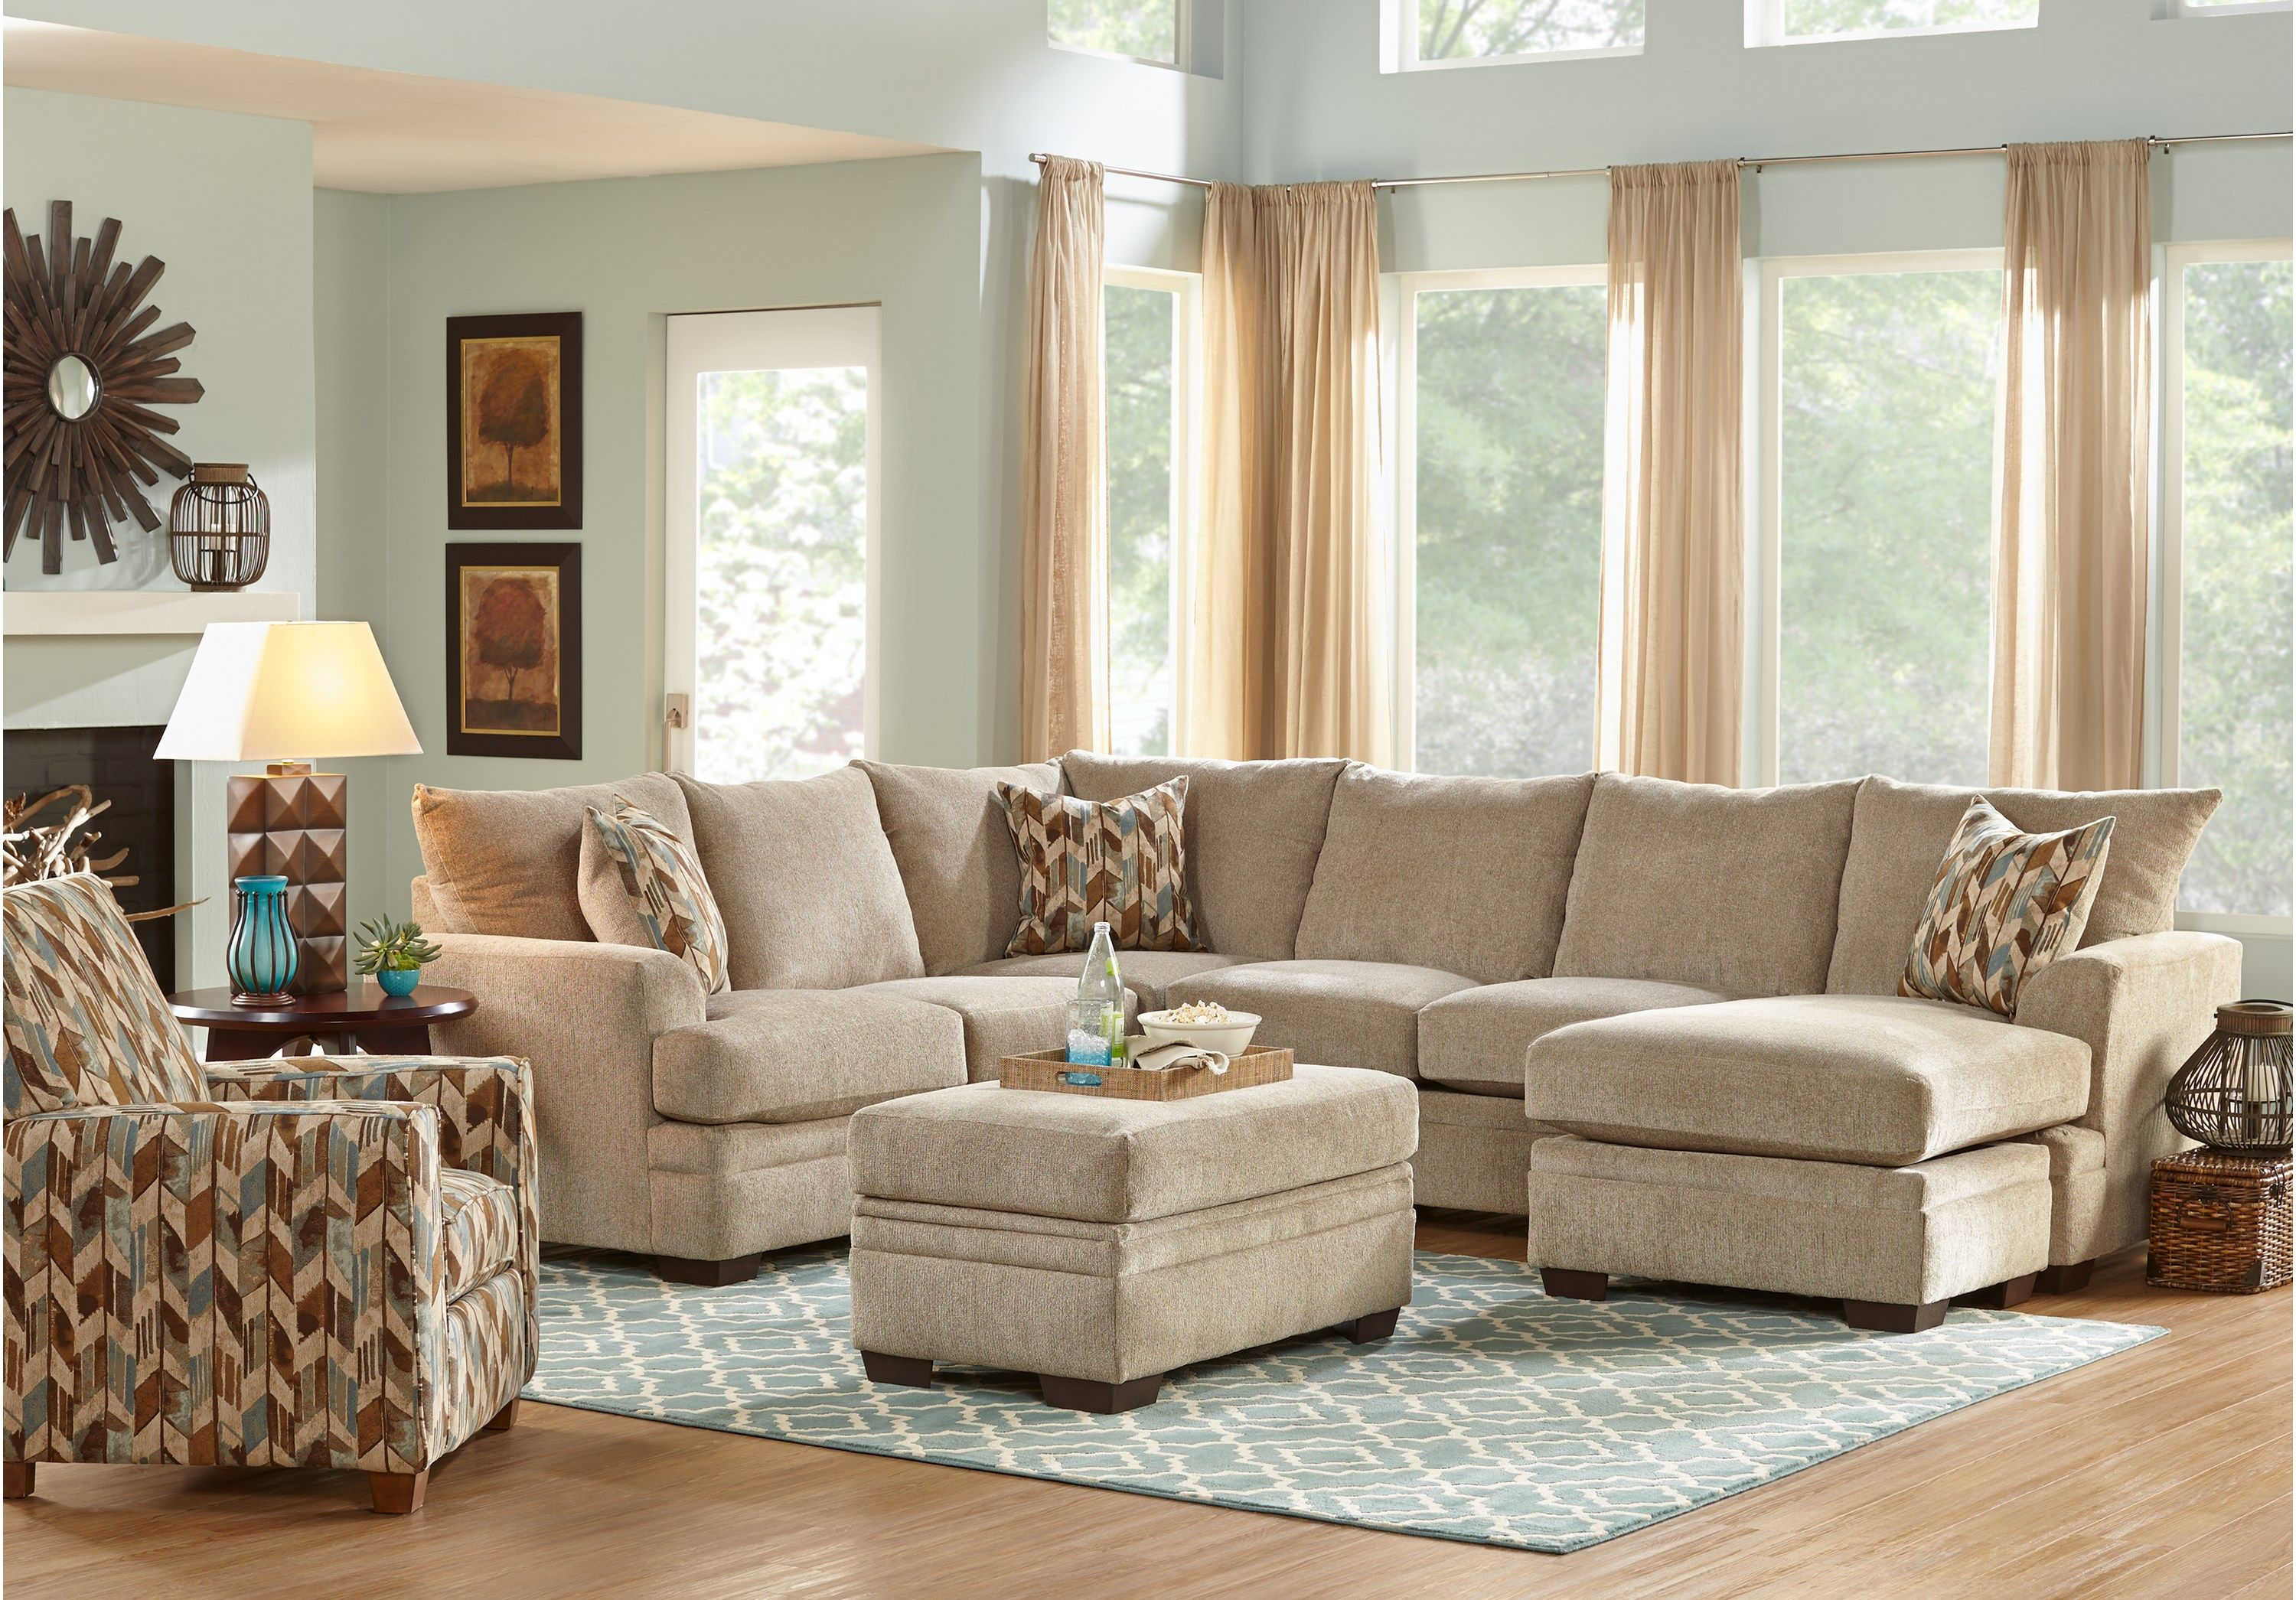 Tremendous Brenton Court Platinum 3 Pc Sectional Living Room French Home Interior And Landscaping Ponolsignezvosmurscom